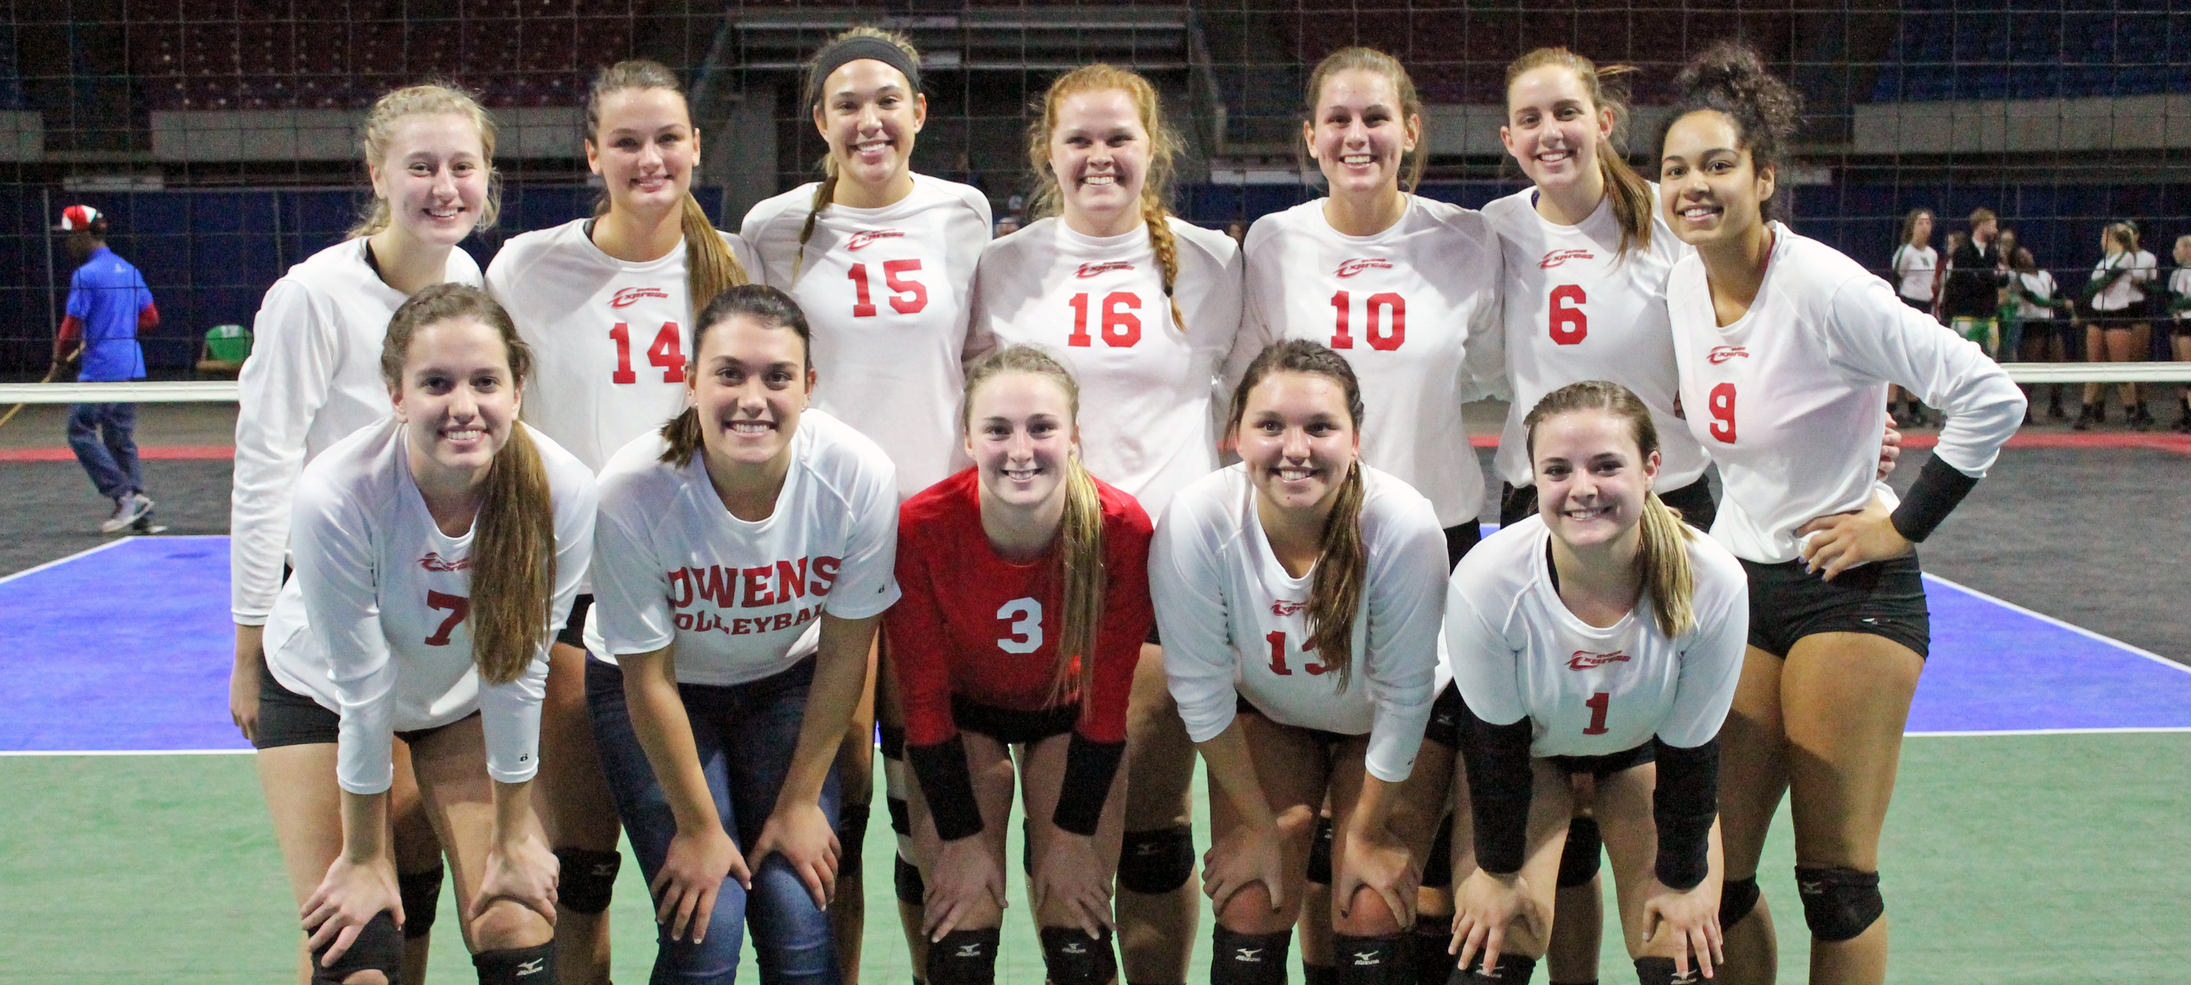 Thrilling Comeback Leads To Third Place National Finish For No. 2 Owens Volleyball